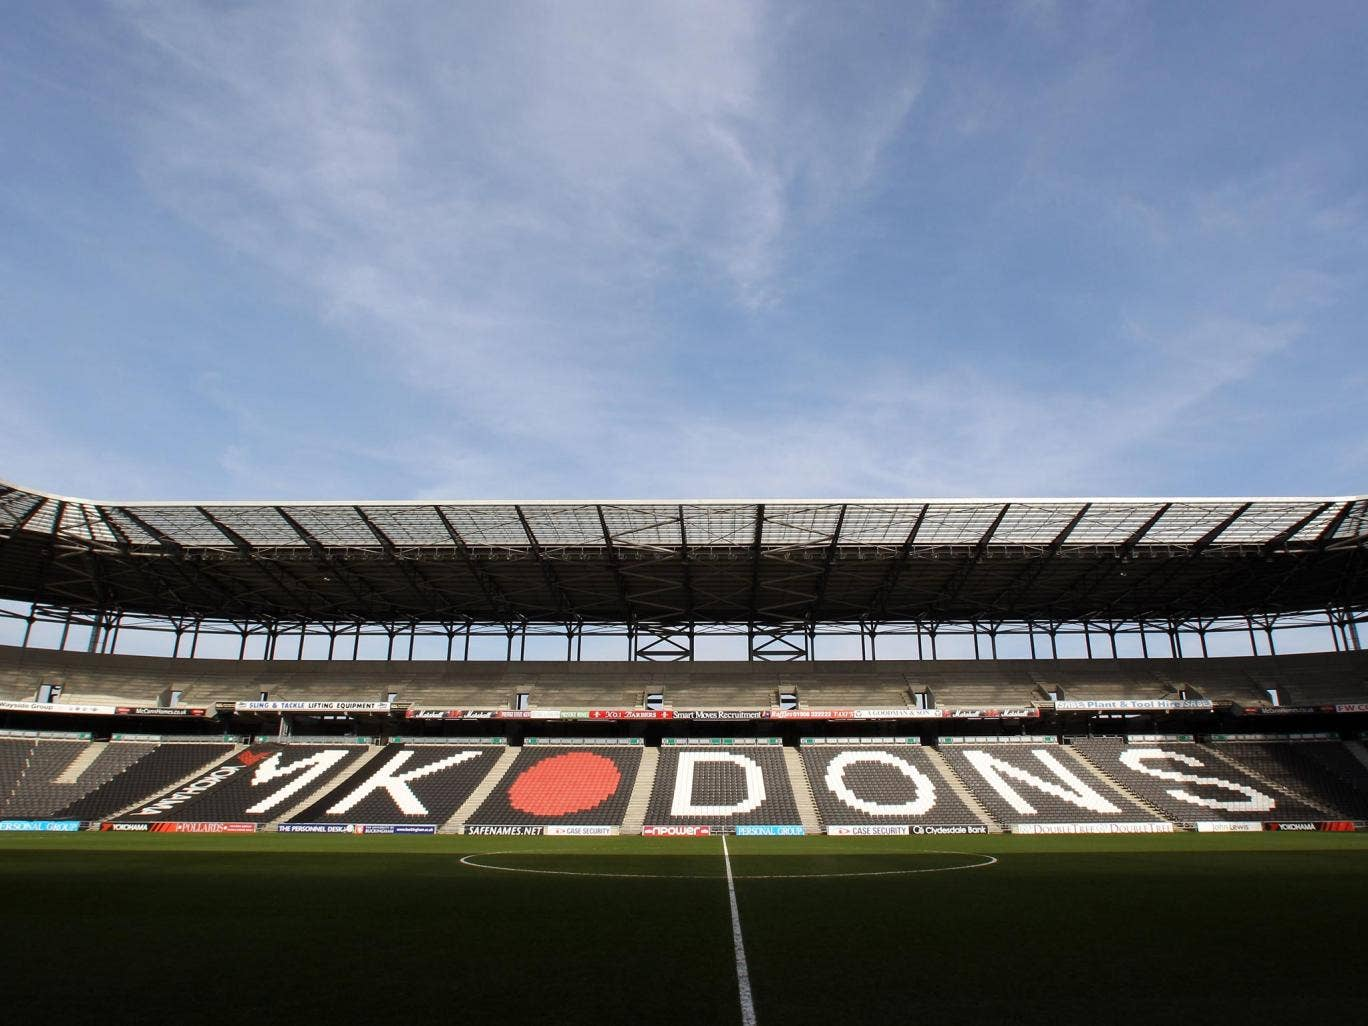 Tottenham could move to the stadiummk in order to redevelop White Hart Lane into a 56,000-seat venue